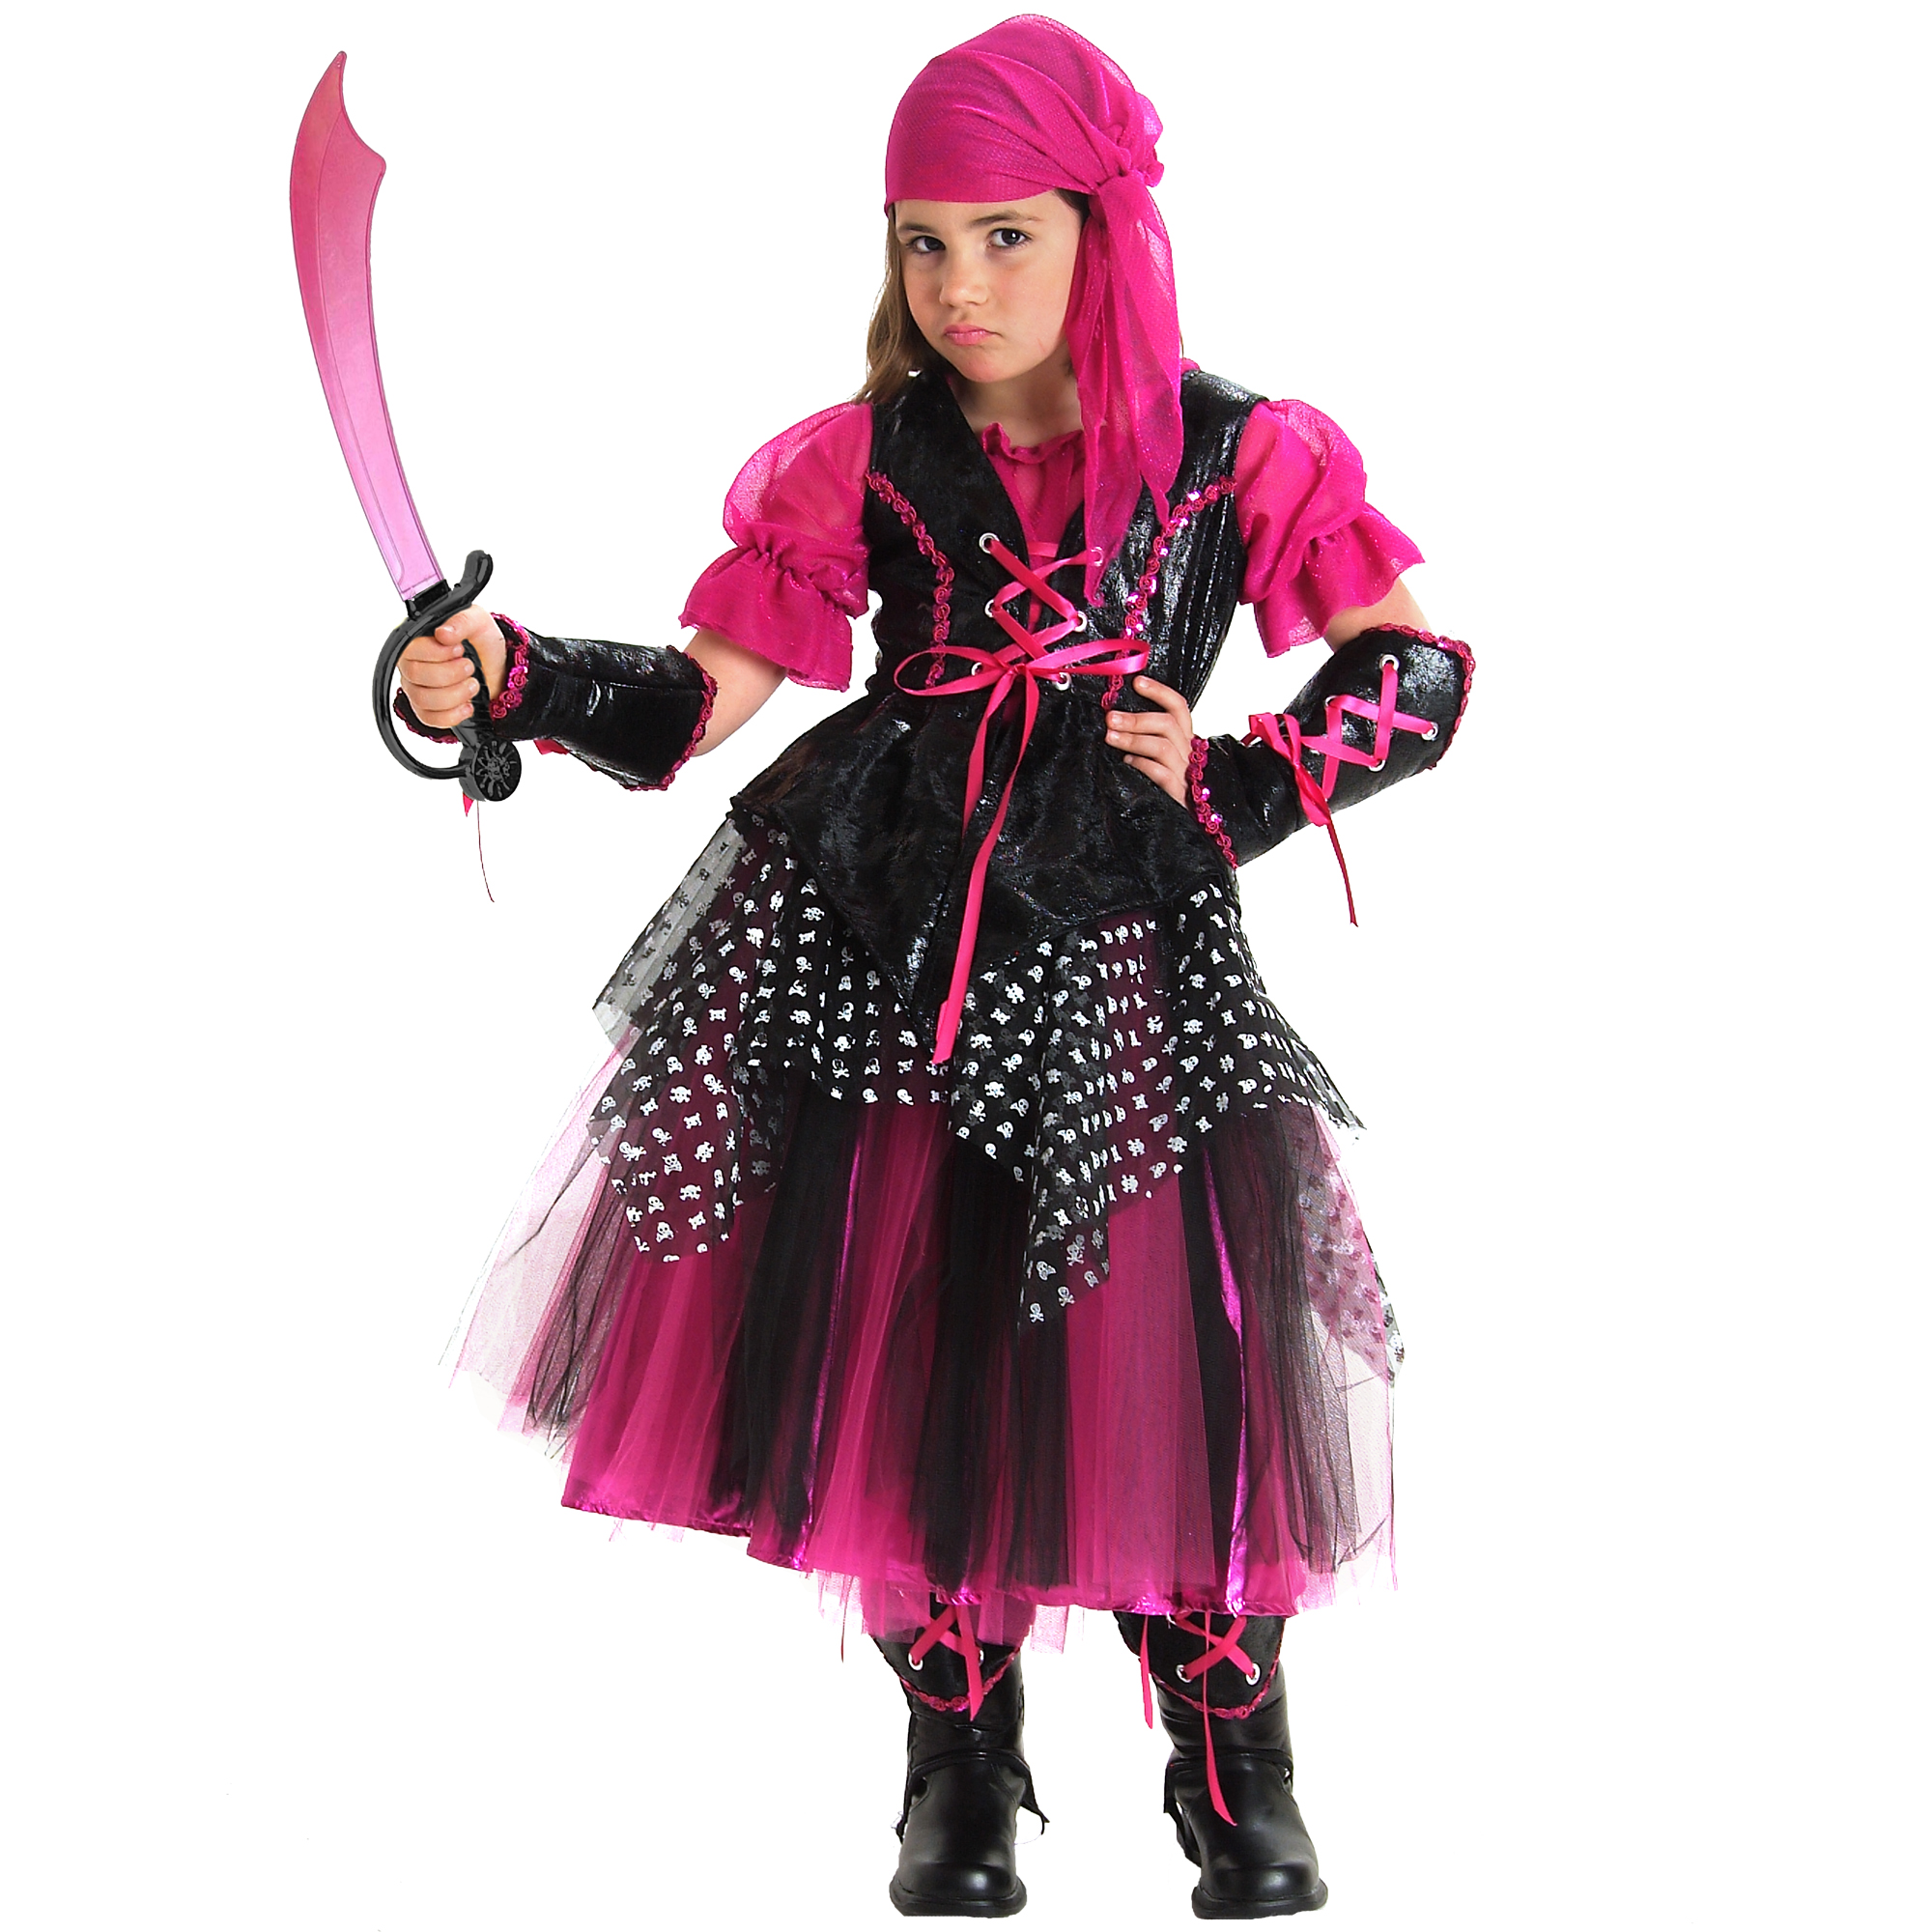 Caribbean Pirate Halloween Costume by Princess Paradise